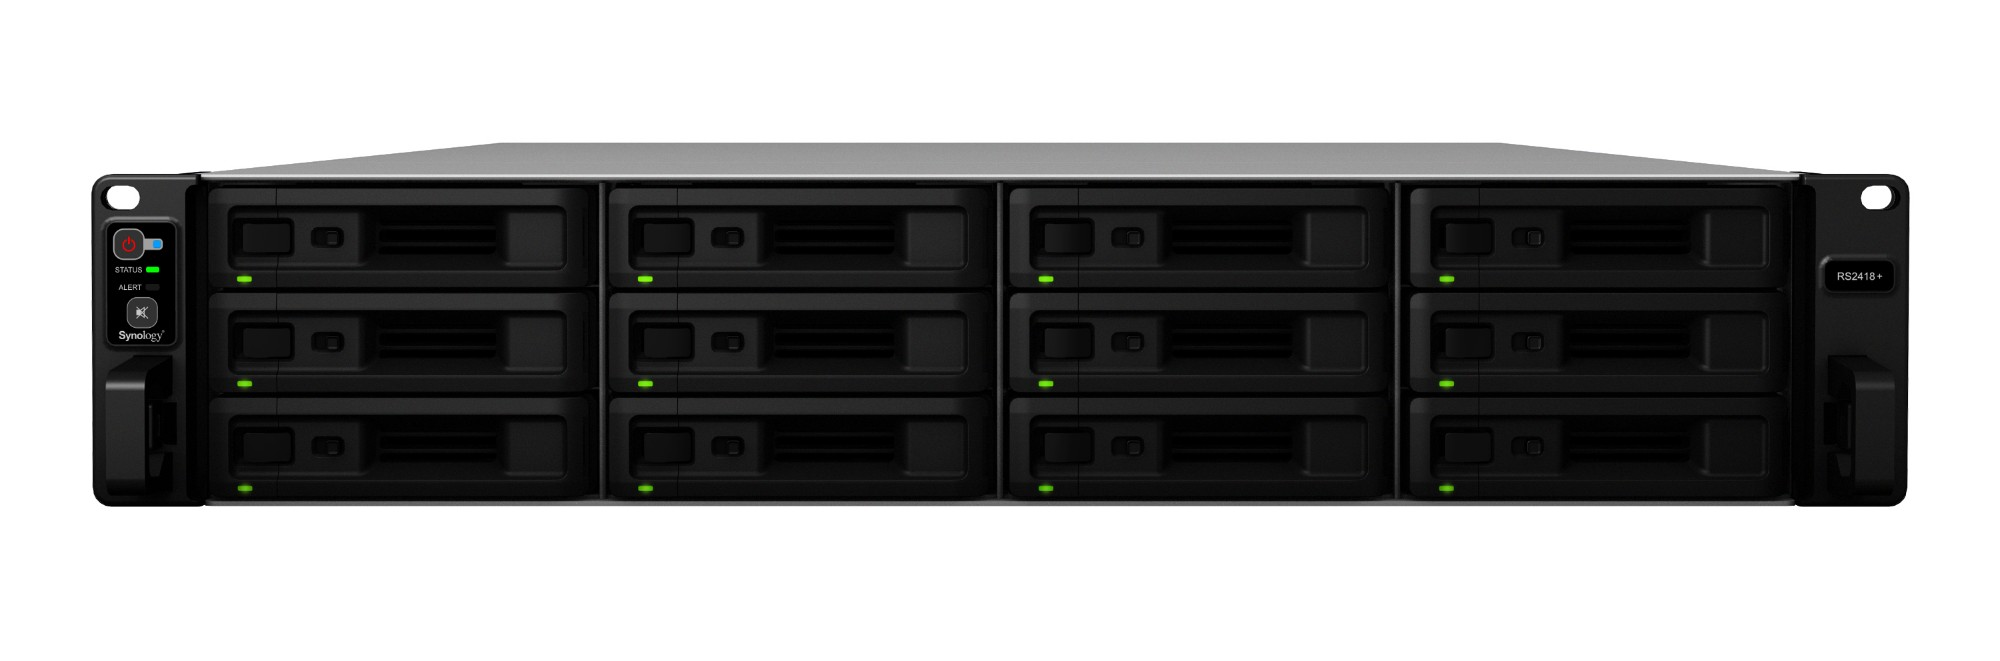 Synology RS2418+/192TB TOSH 12 Bay Rack